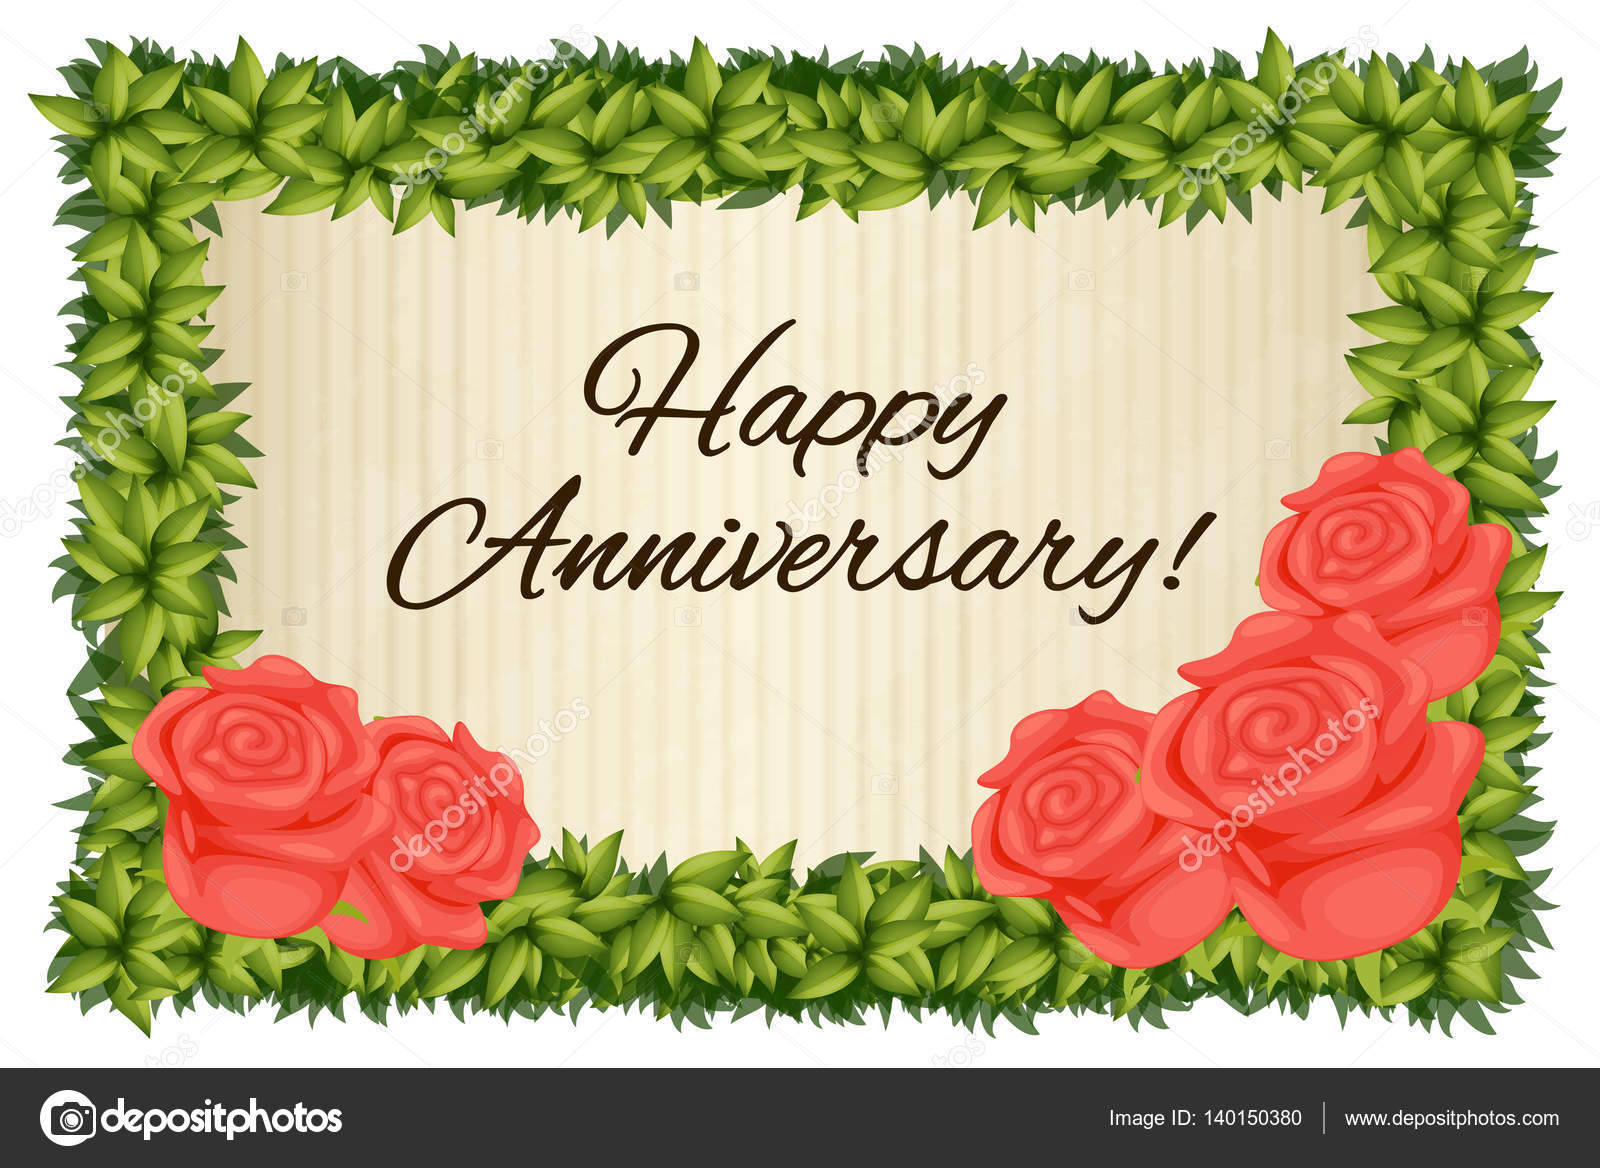 Happy anniversary card template with red roses Vector – Anniversary Card Template